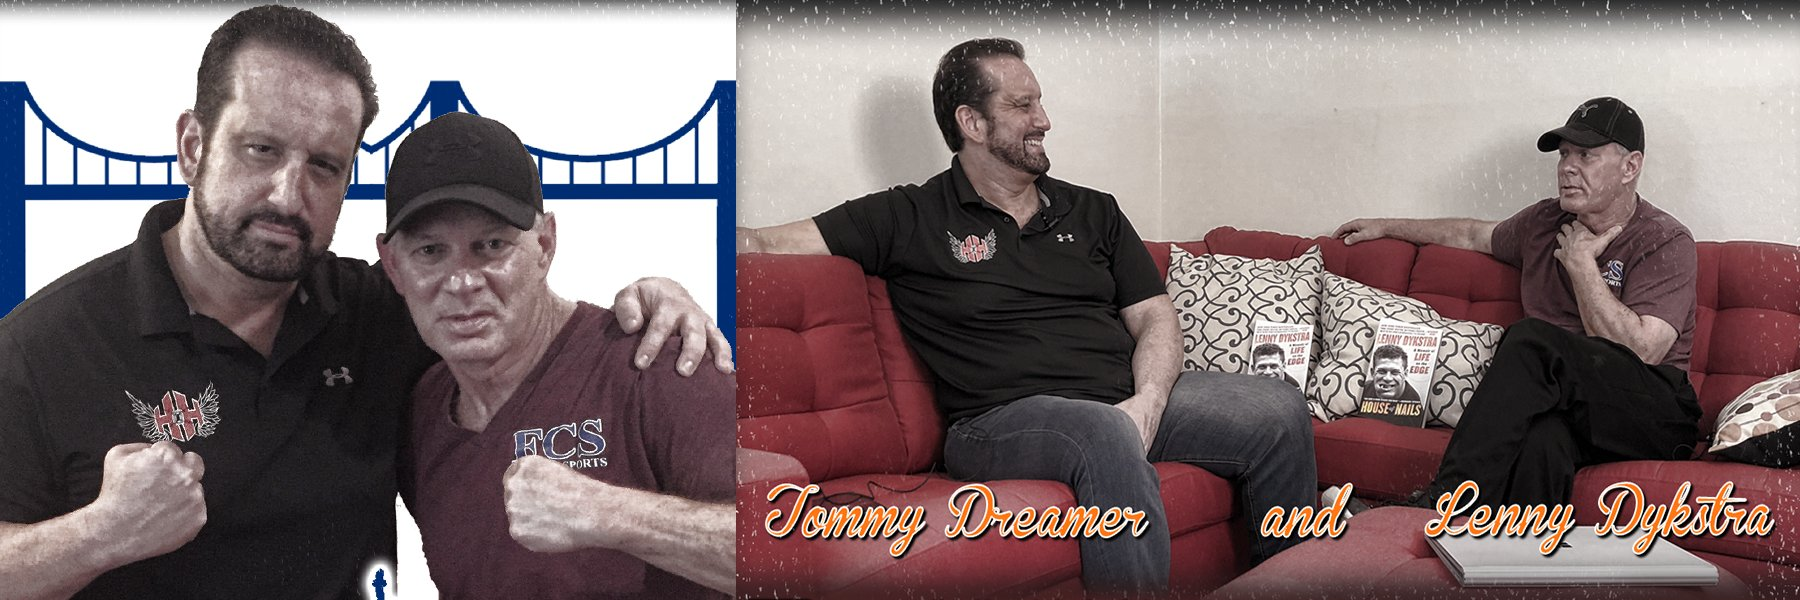 NEW: Tommy Dreamer Shoot Interview w/ Lenny Dykstra (Mets/Phillies)